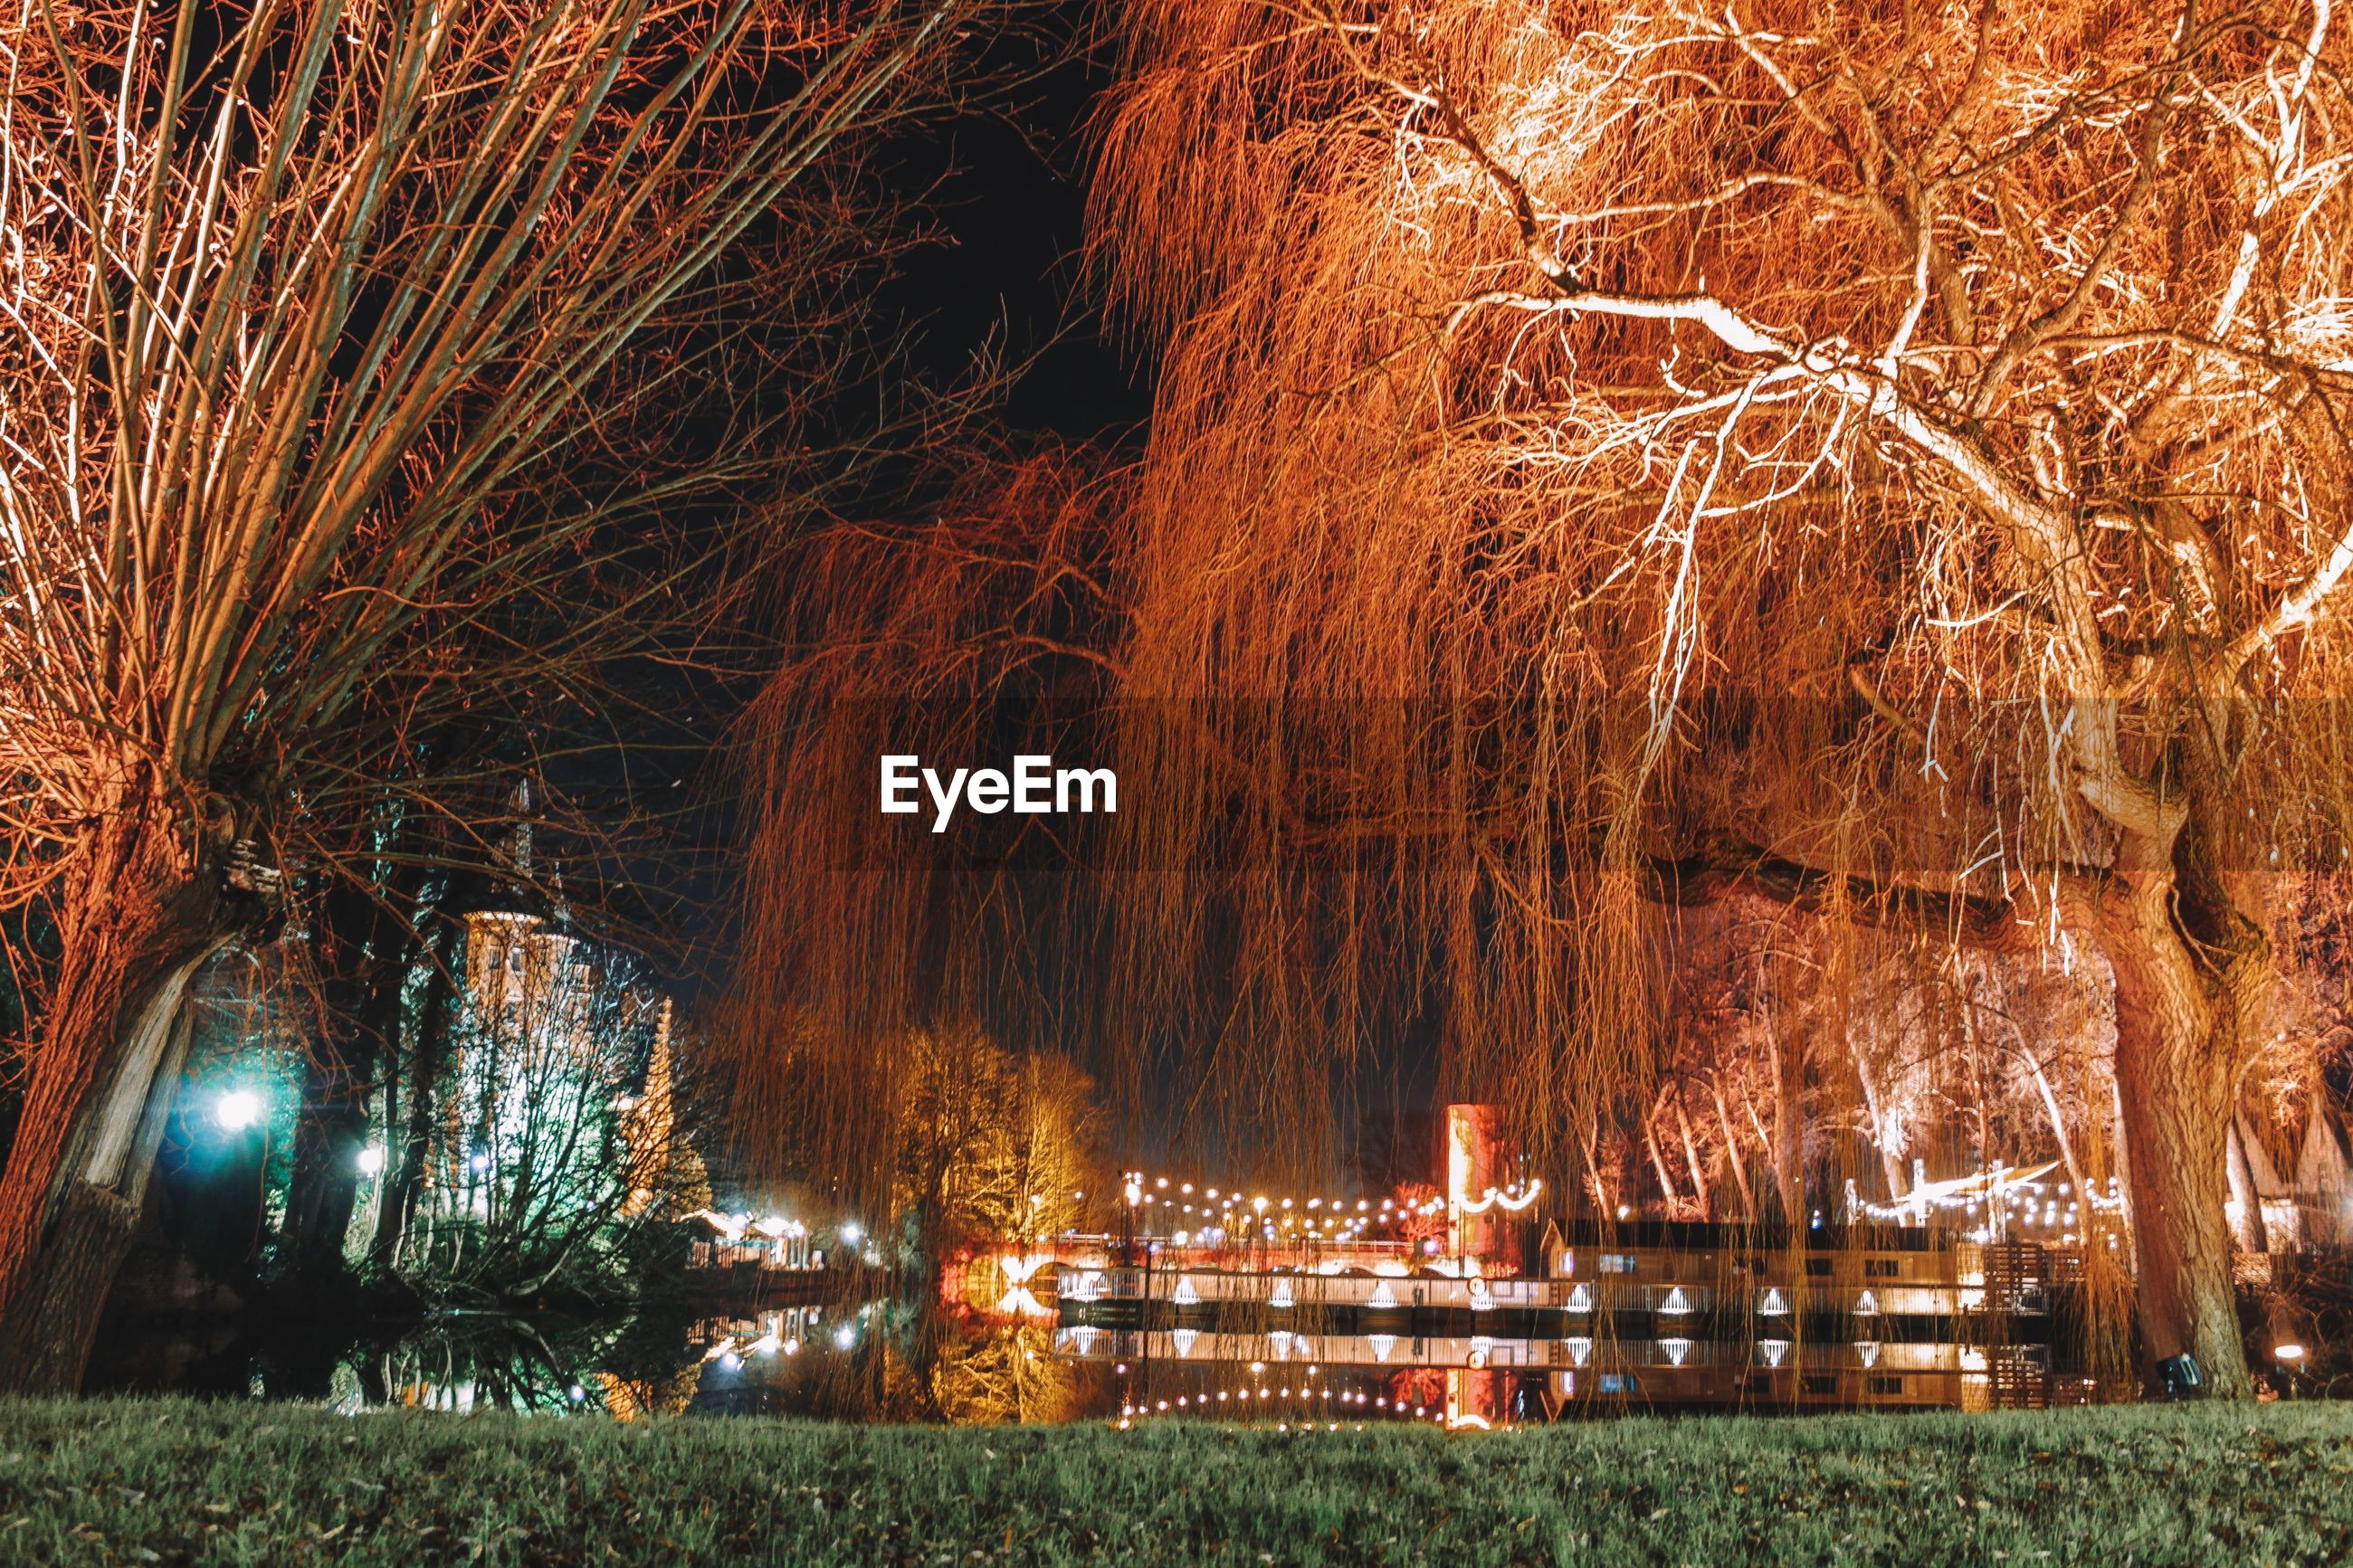 VIEW OF ILLUMINATED TREES AT PARK